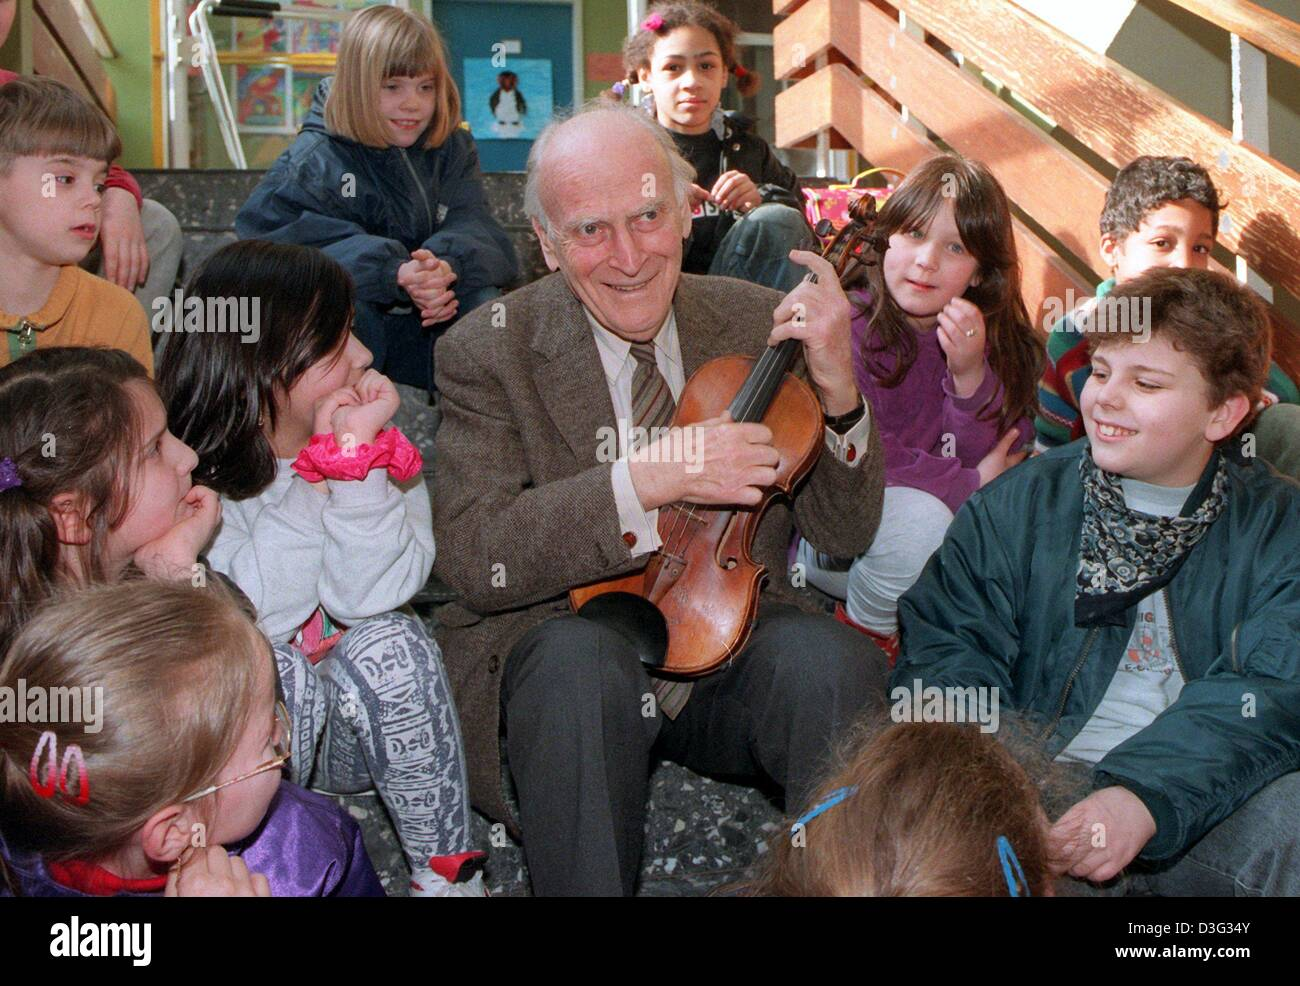 (dpa files) - British violinist and conductor Yehudi Menuhin serenades on his violine with a group of children from - Stock Image